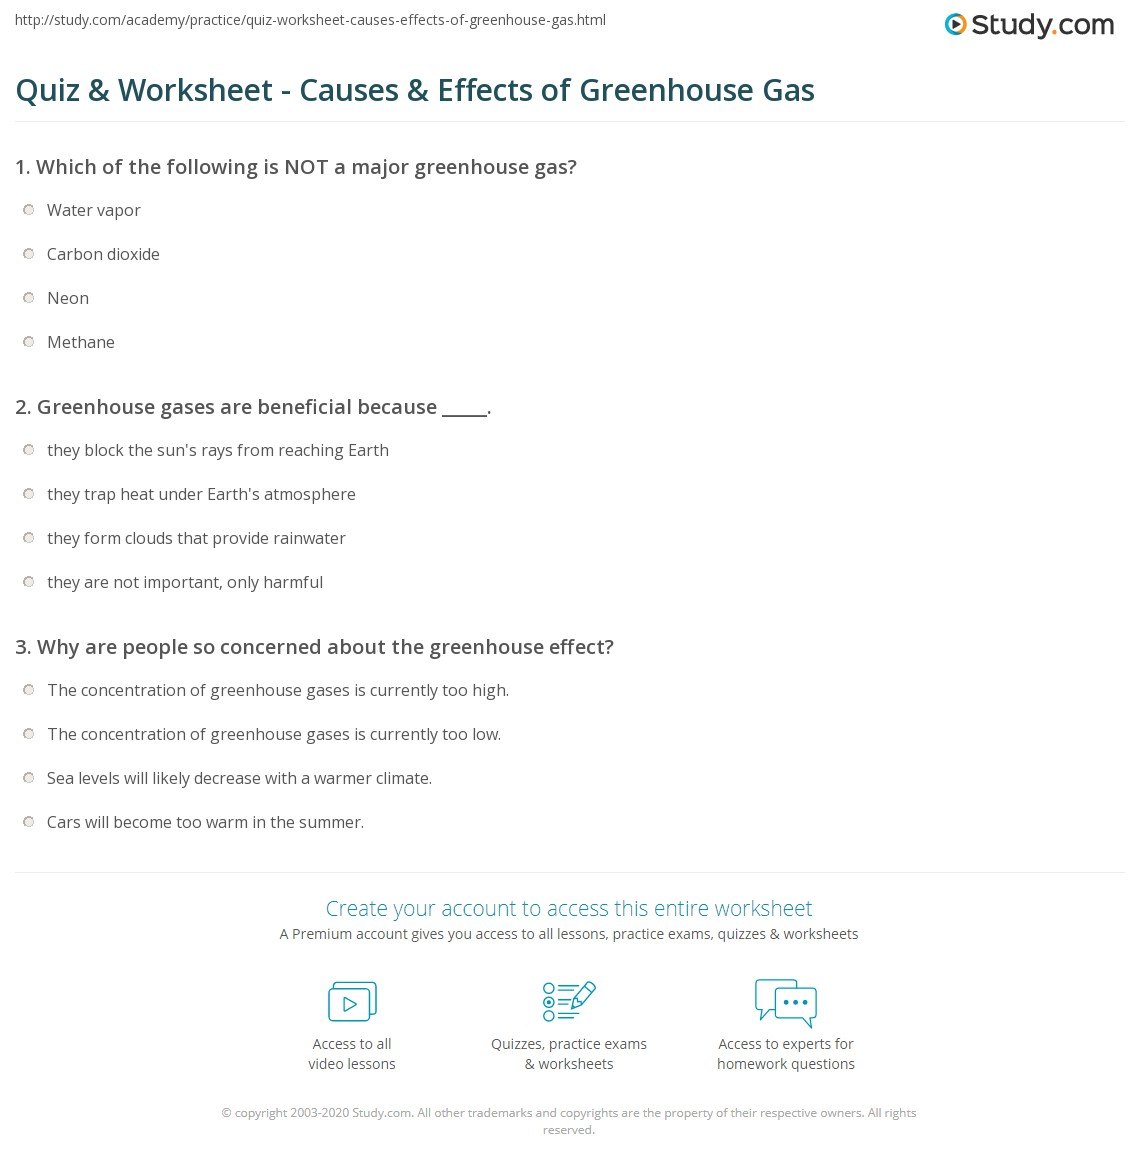 quiz & worksheet - causes & effects of greenhouse gas | study